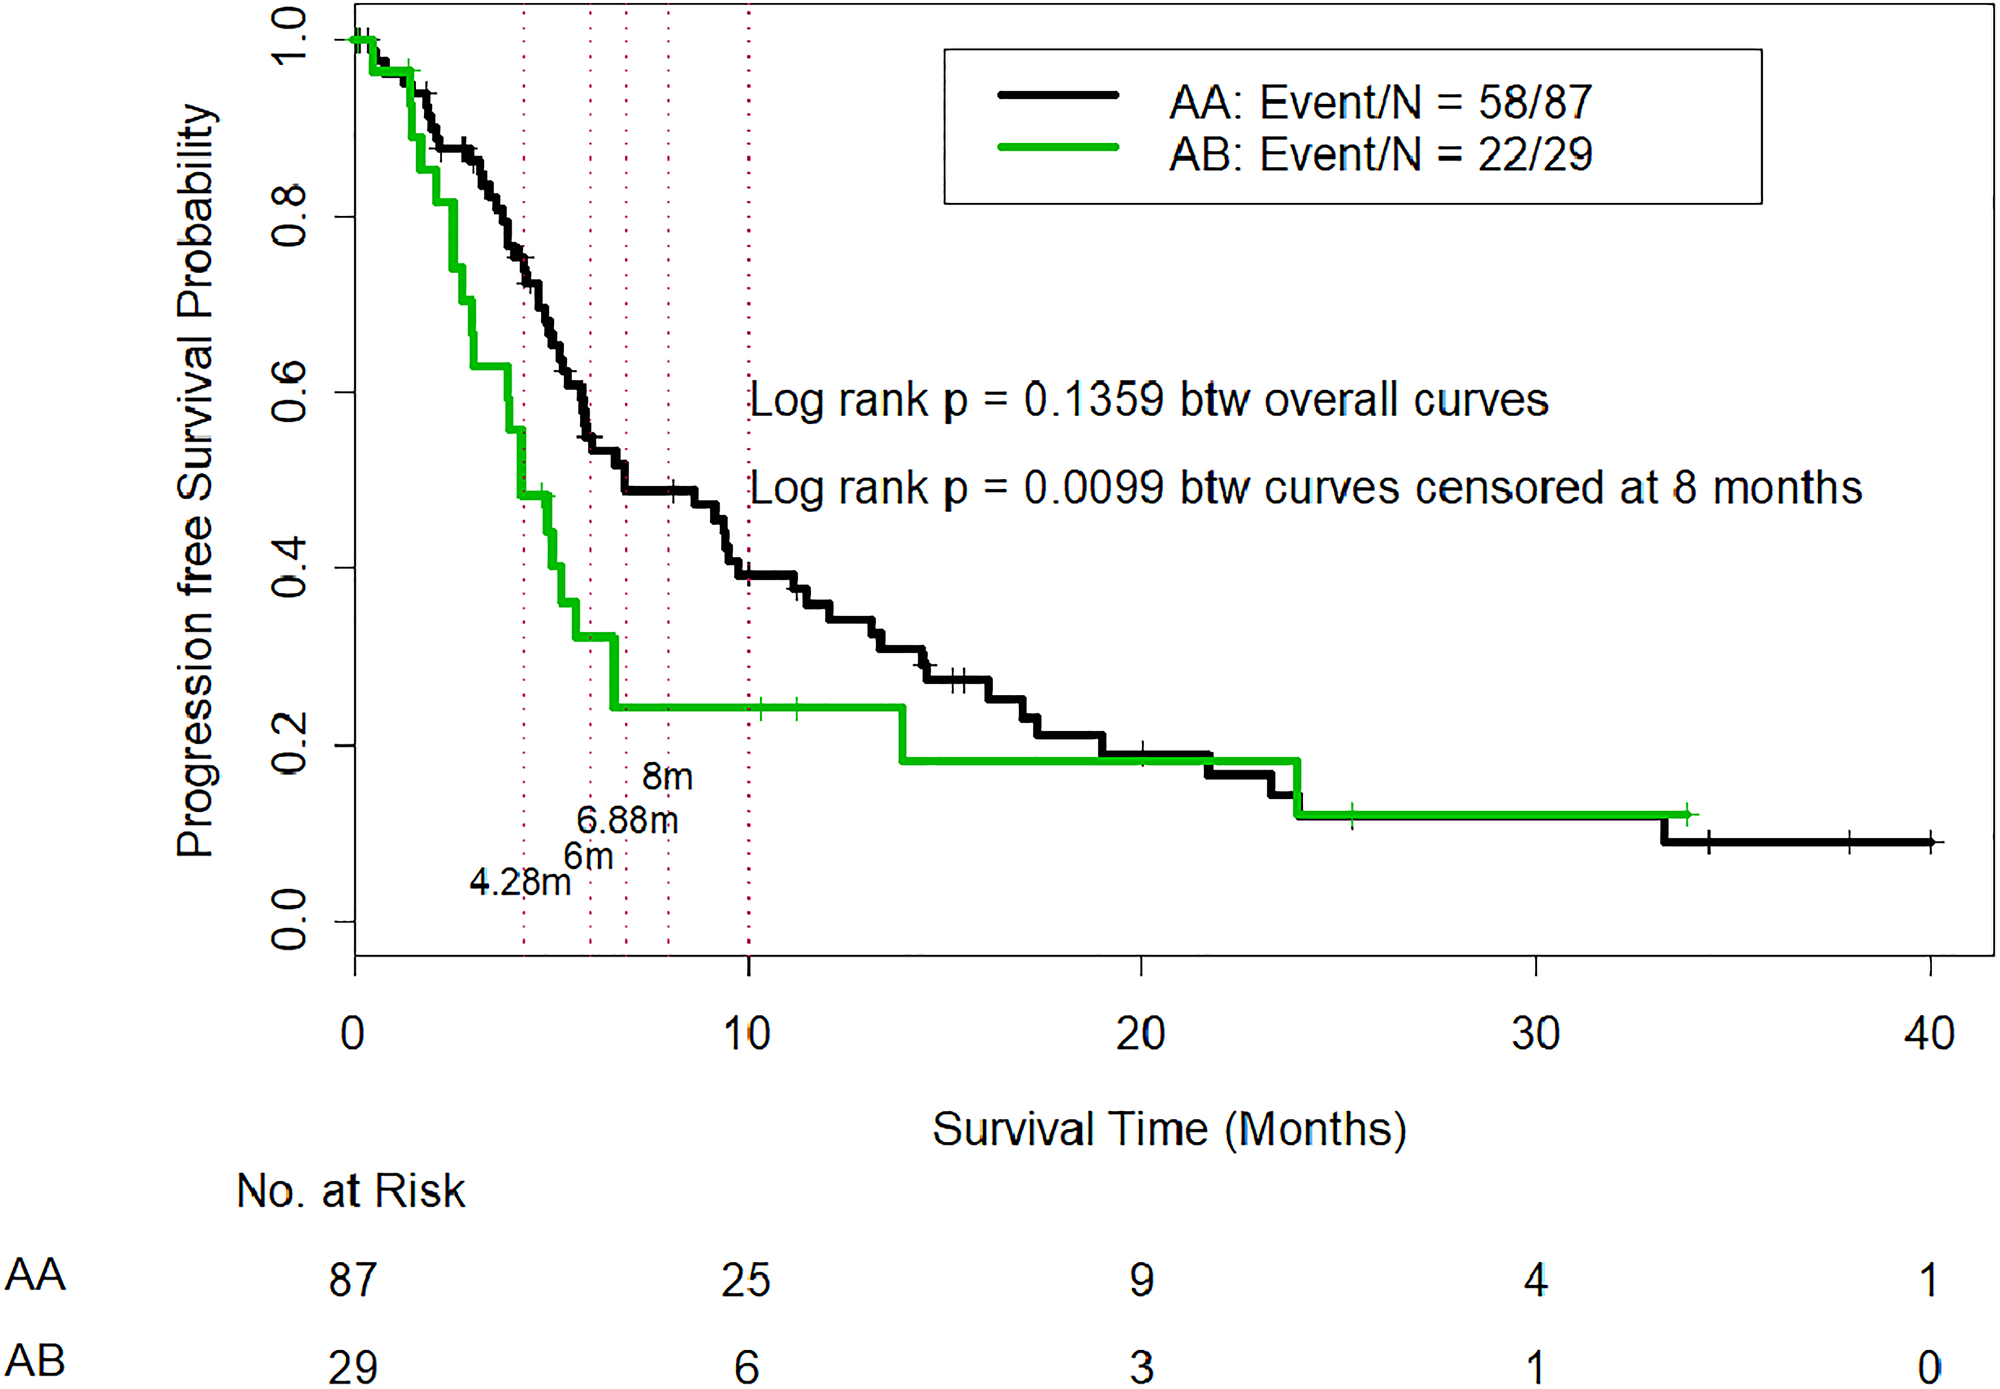 Comparison of progression-free survival in CTP class A patients who were reclassified as IGF/CTP-A (AA) and or IGF/CTP-B (AB).